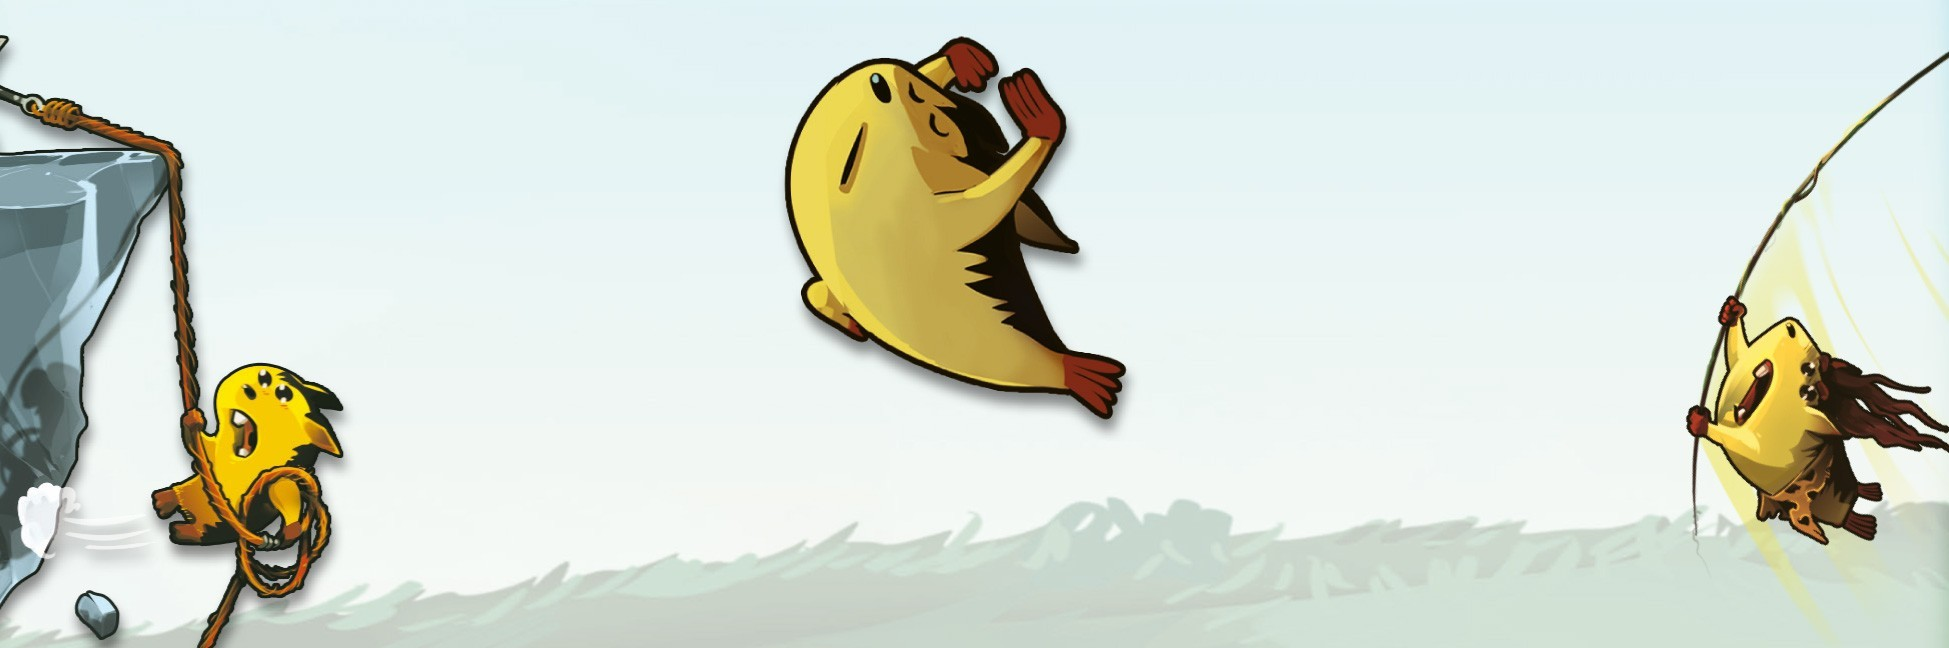 Lemming picture